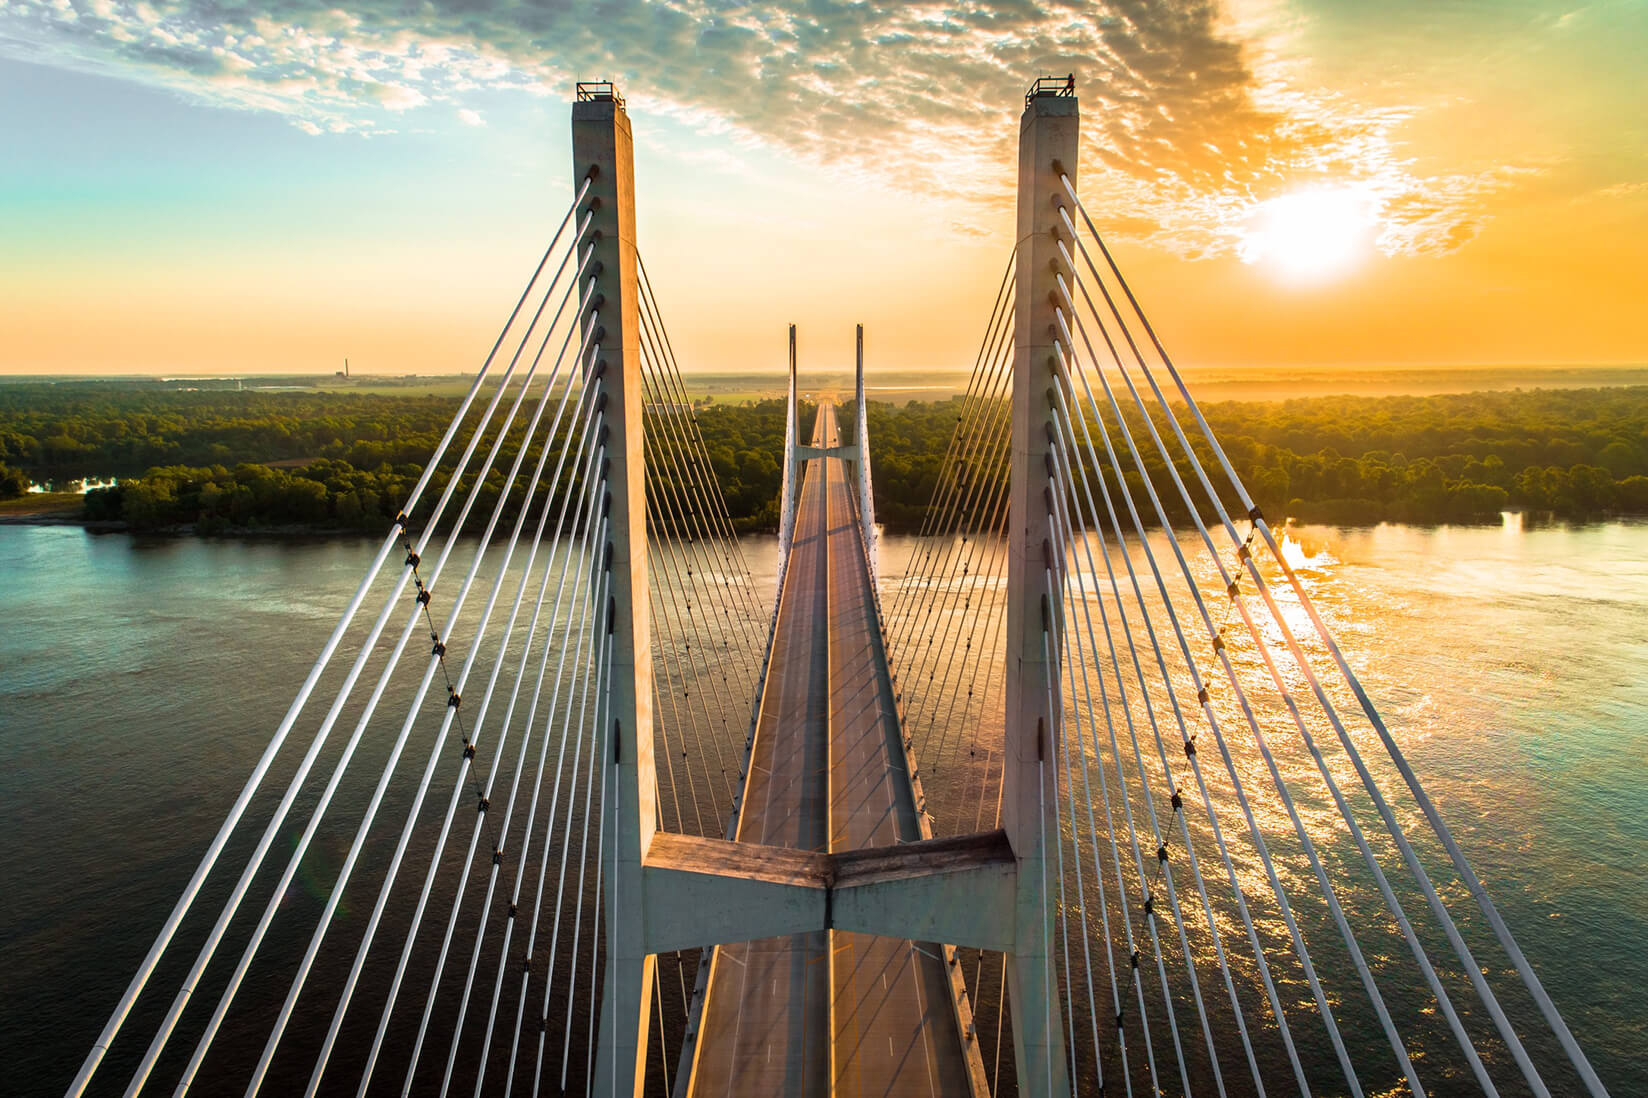 Bridge-MicahBurnside.jpg